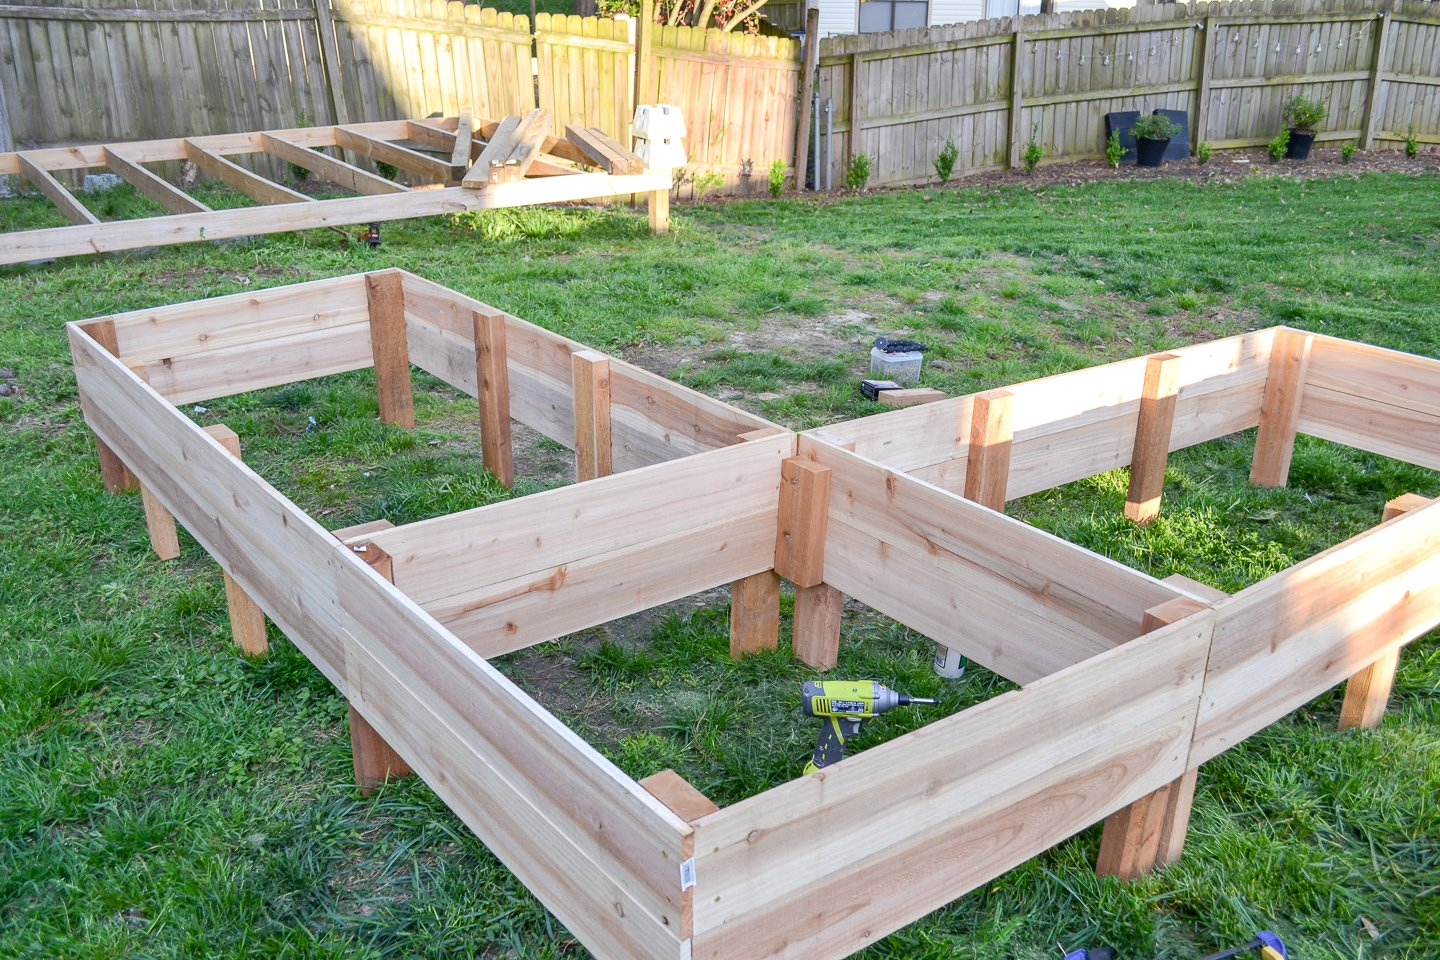 positioning new garden bed in place